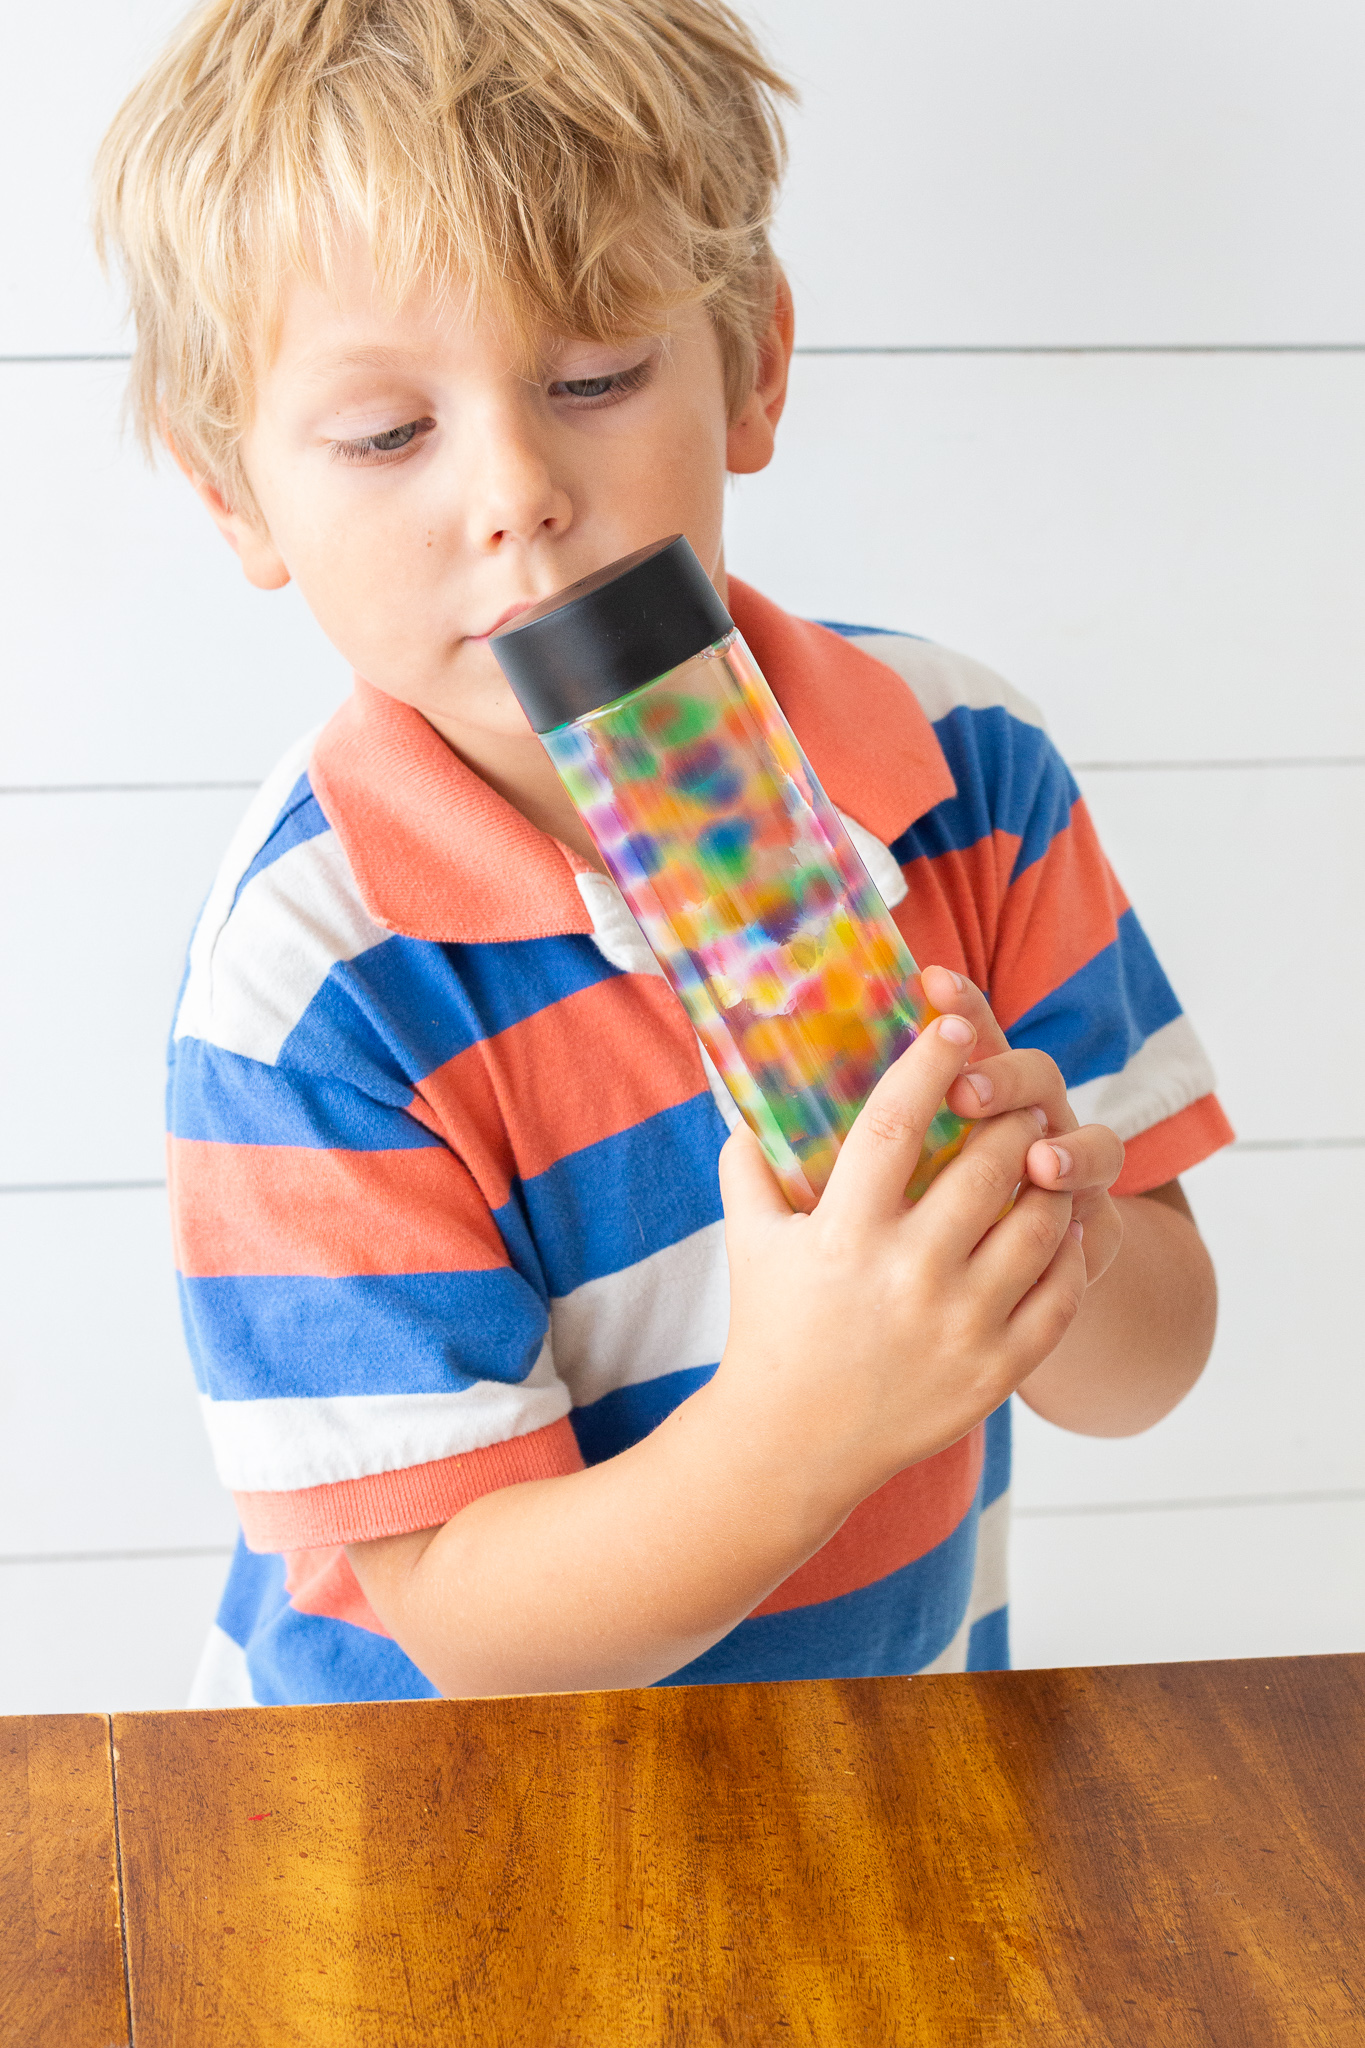 Young blonde boy shaking a sensory bottle with water beads inside.